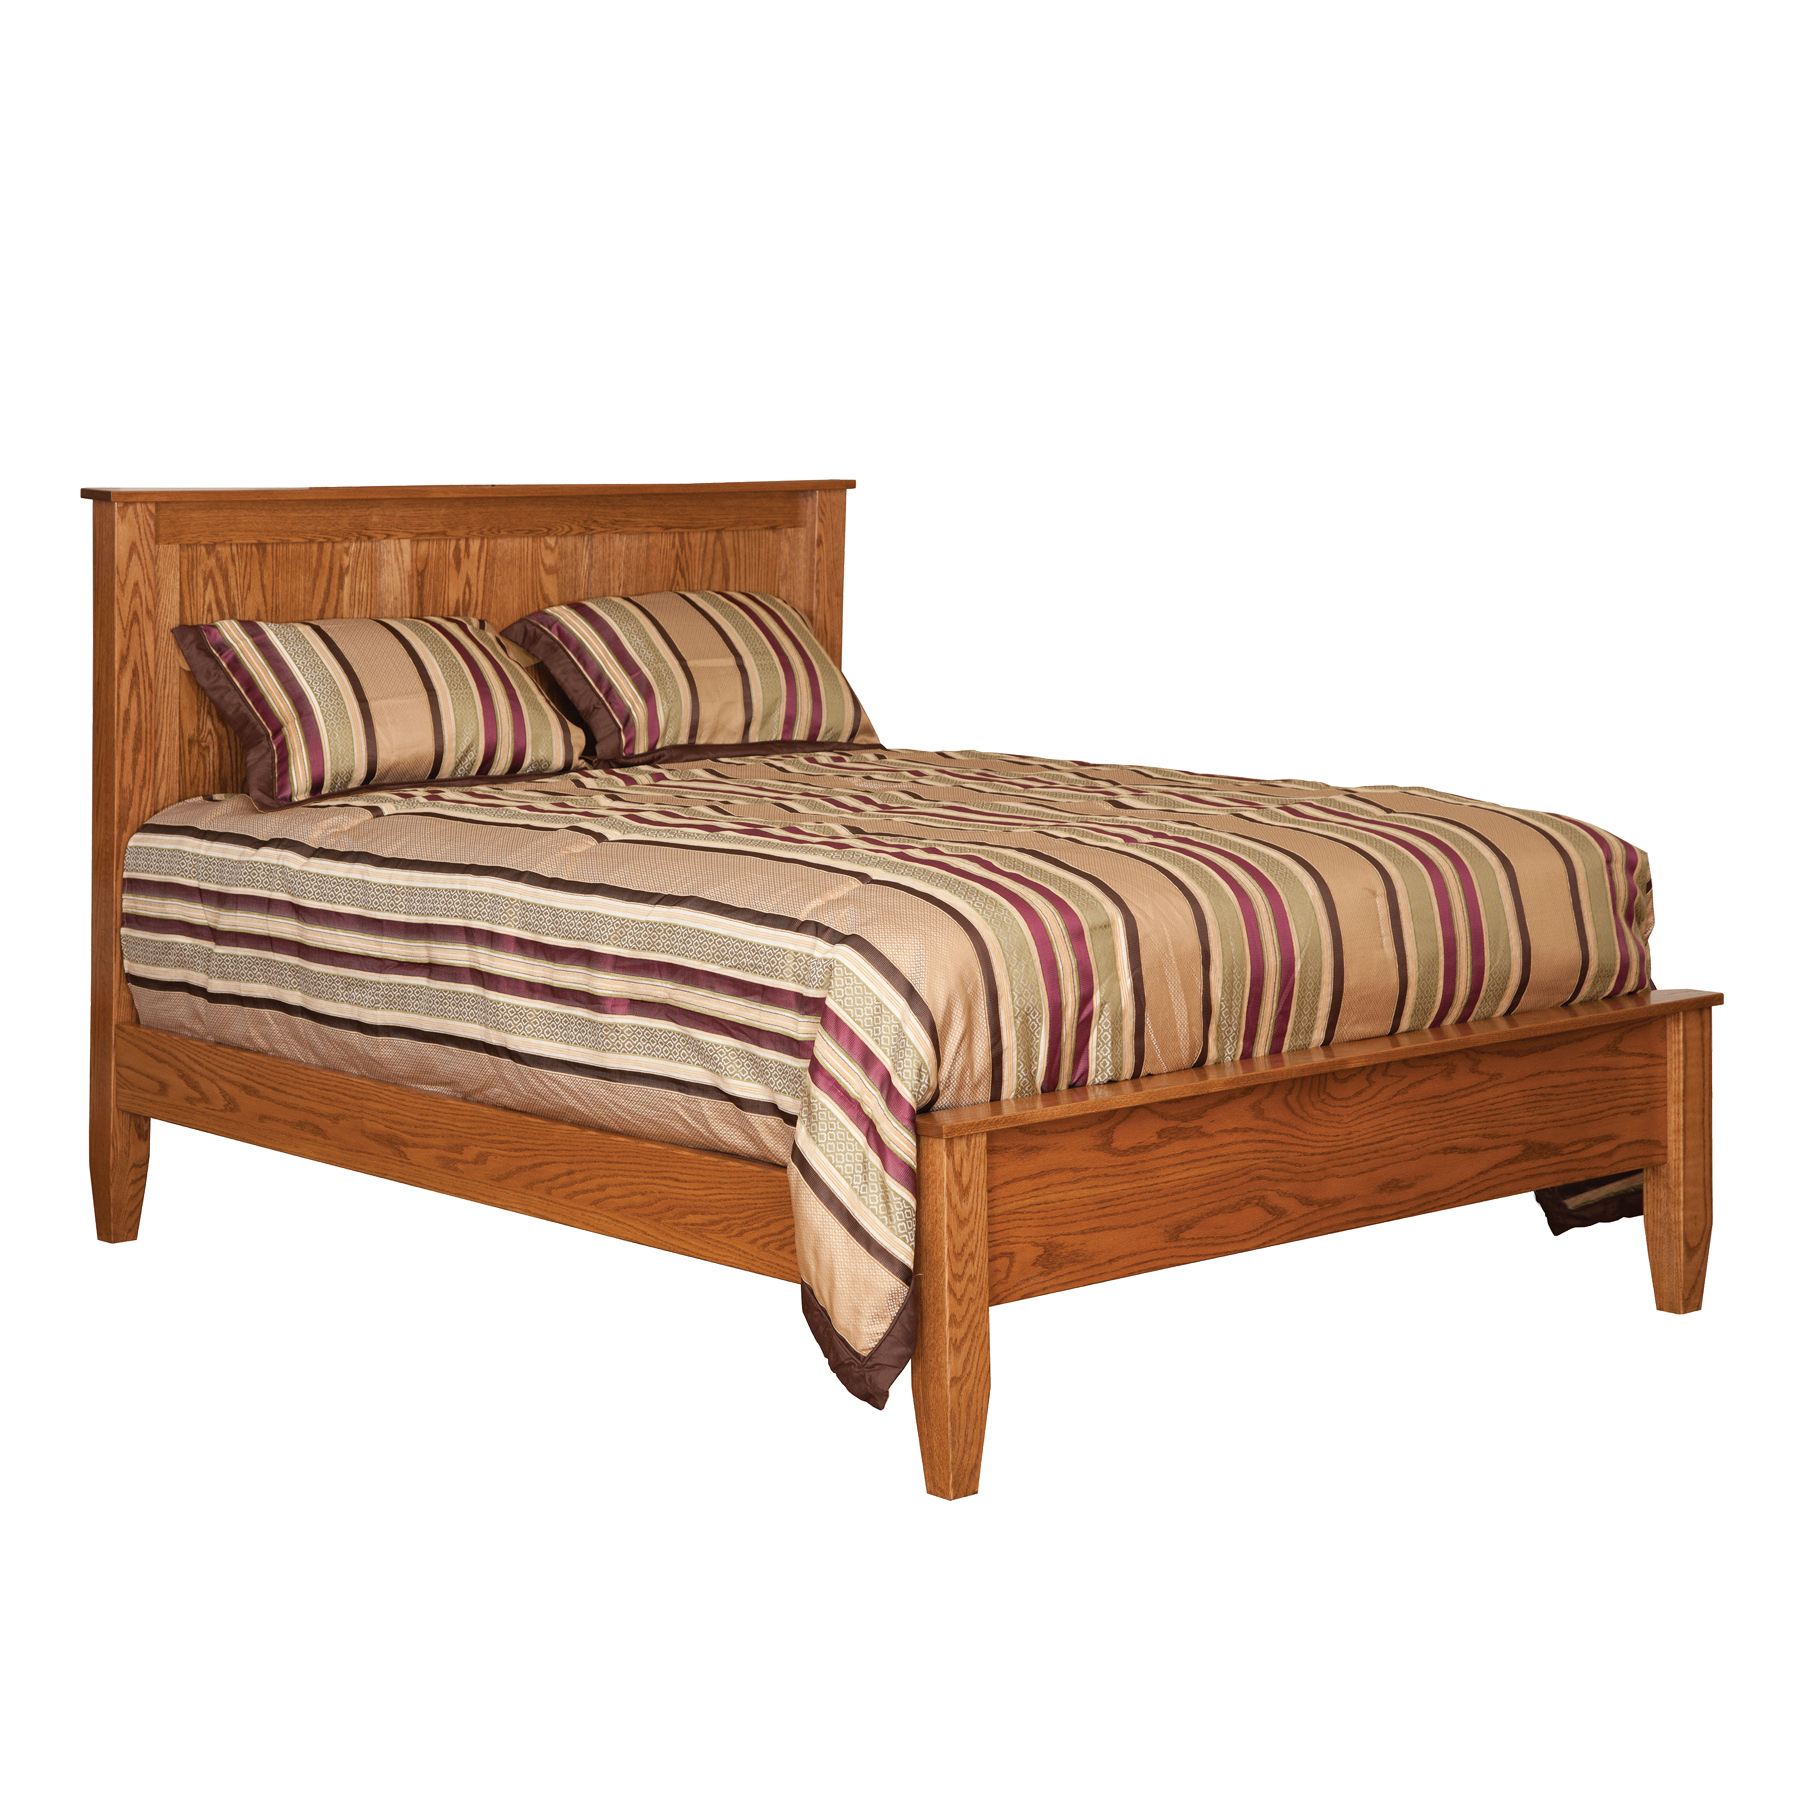 English Shaker Panel Bed with Lowfoot